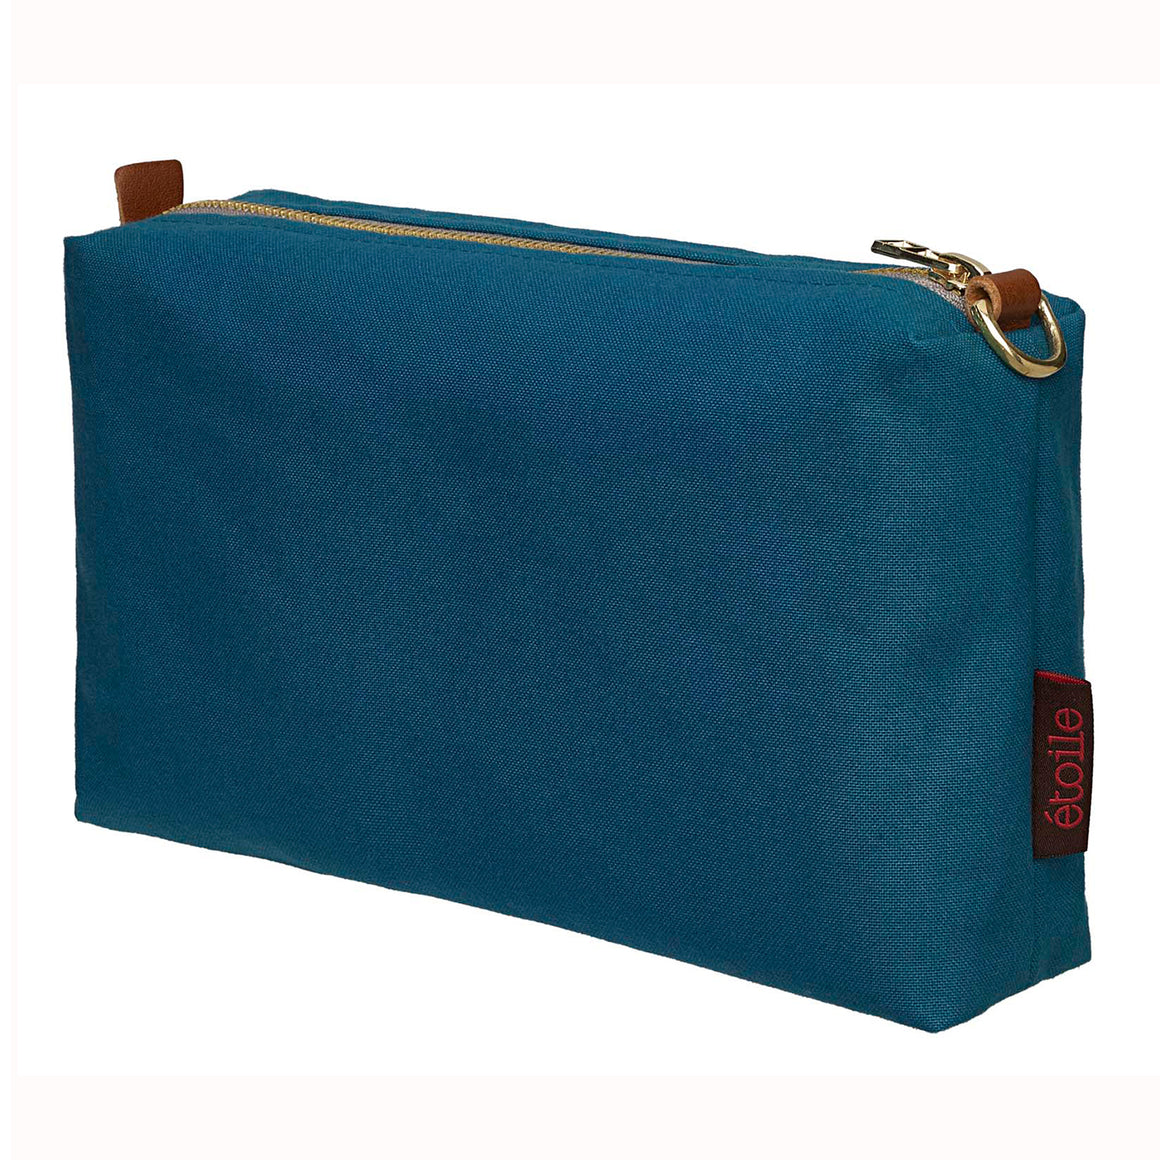 Resin Coated Cotton Canvas Wash, Toiletry, Cosmetic & Shaving Travel Bag - Petrol Blue Ships from canada